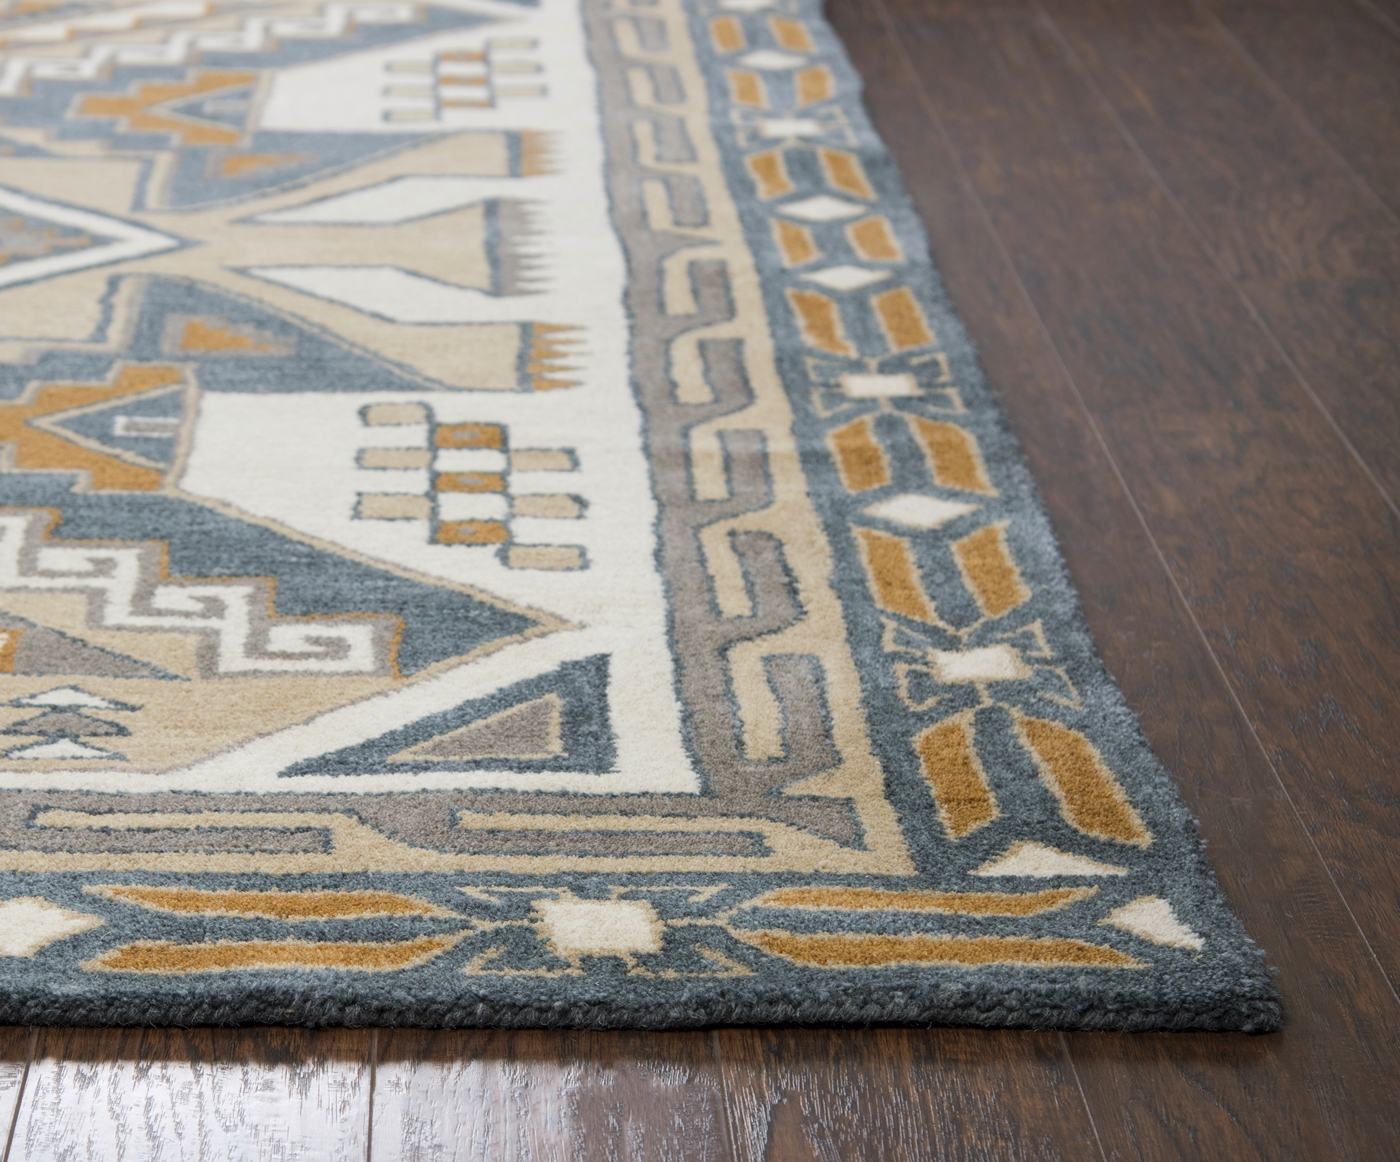 Southwest ornate aztec wool area rug in gray tan 8 39 x 10 39 for Grey and tan rug